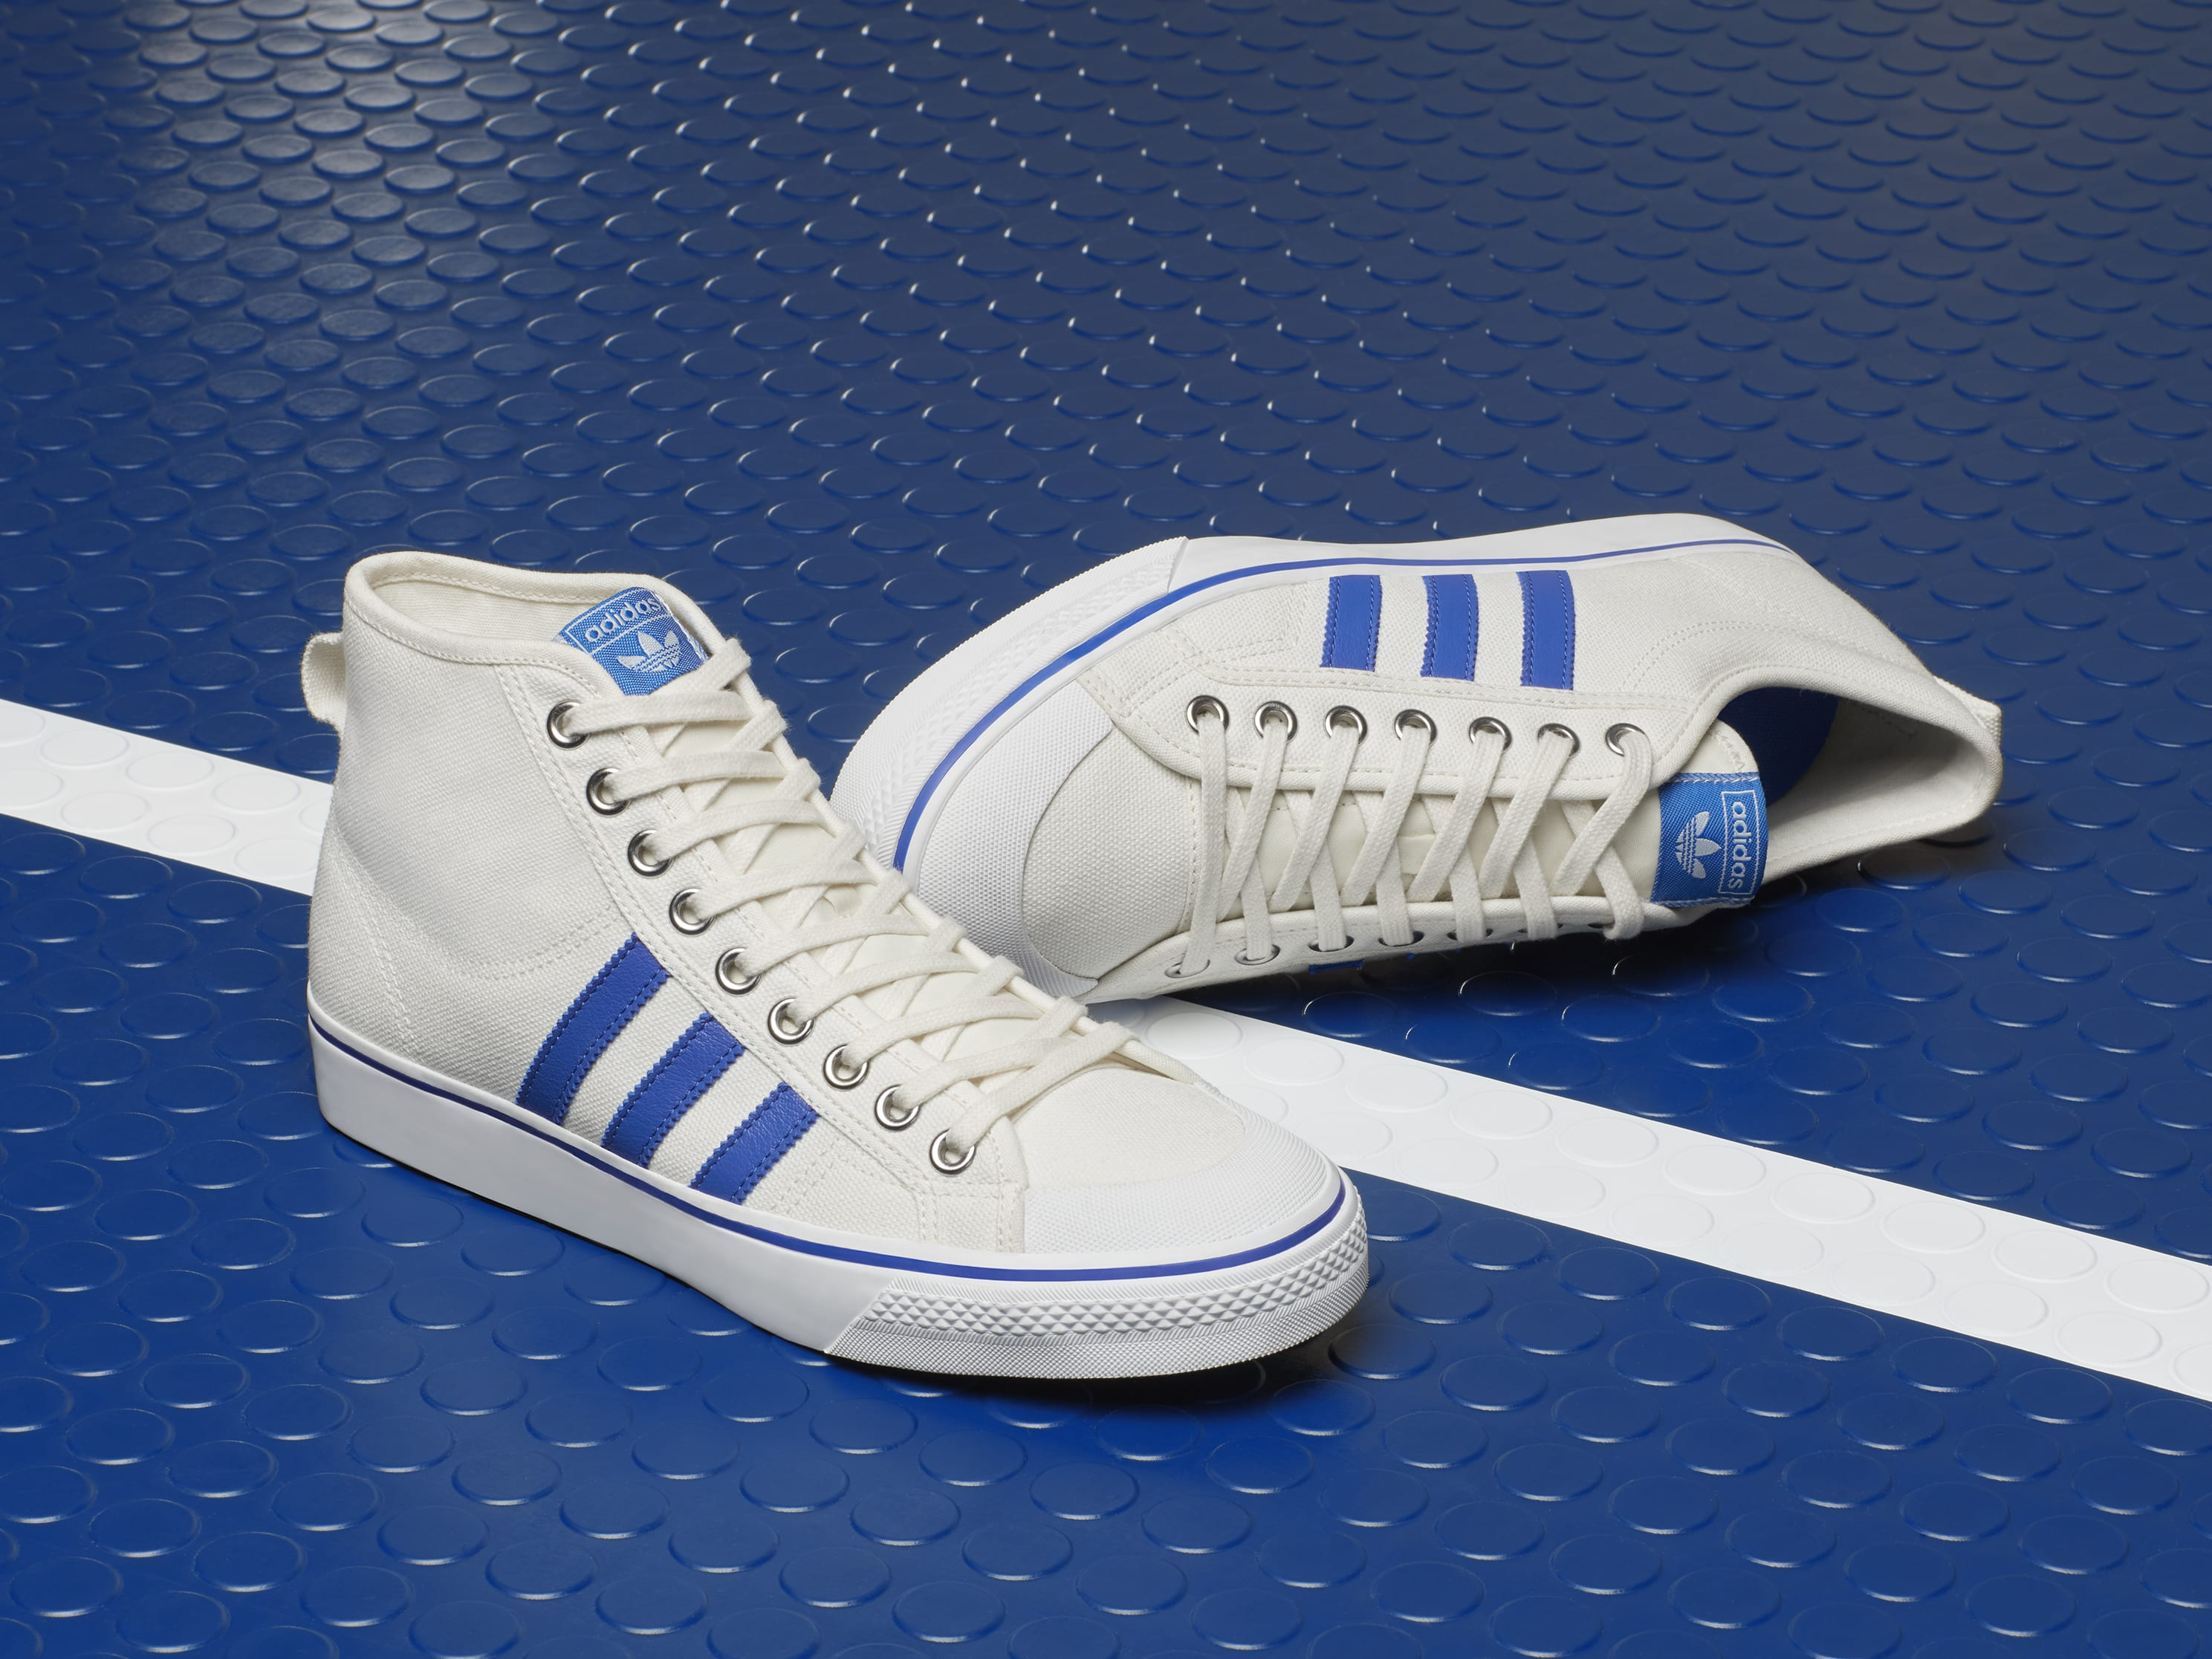 b99ce209400 1970 s classic green striped adidas shoes